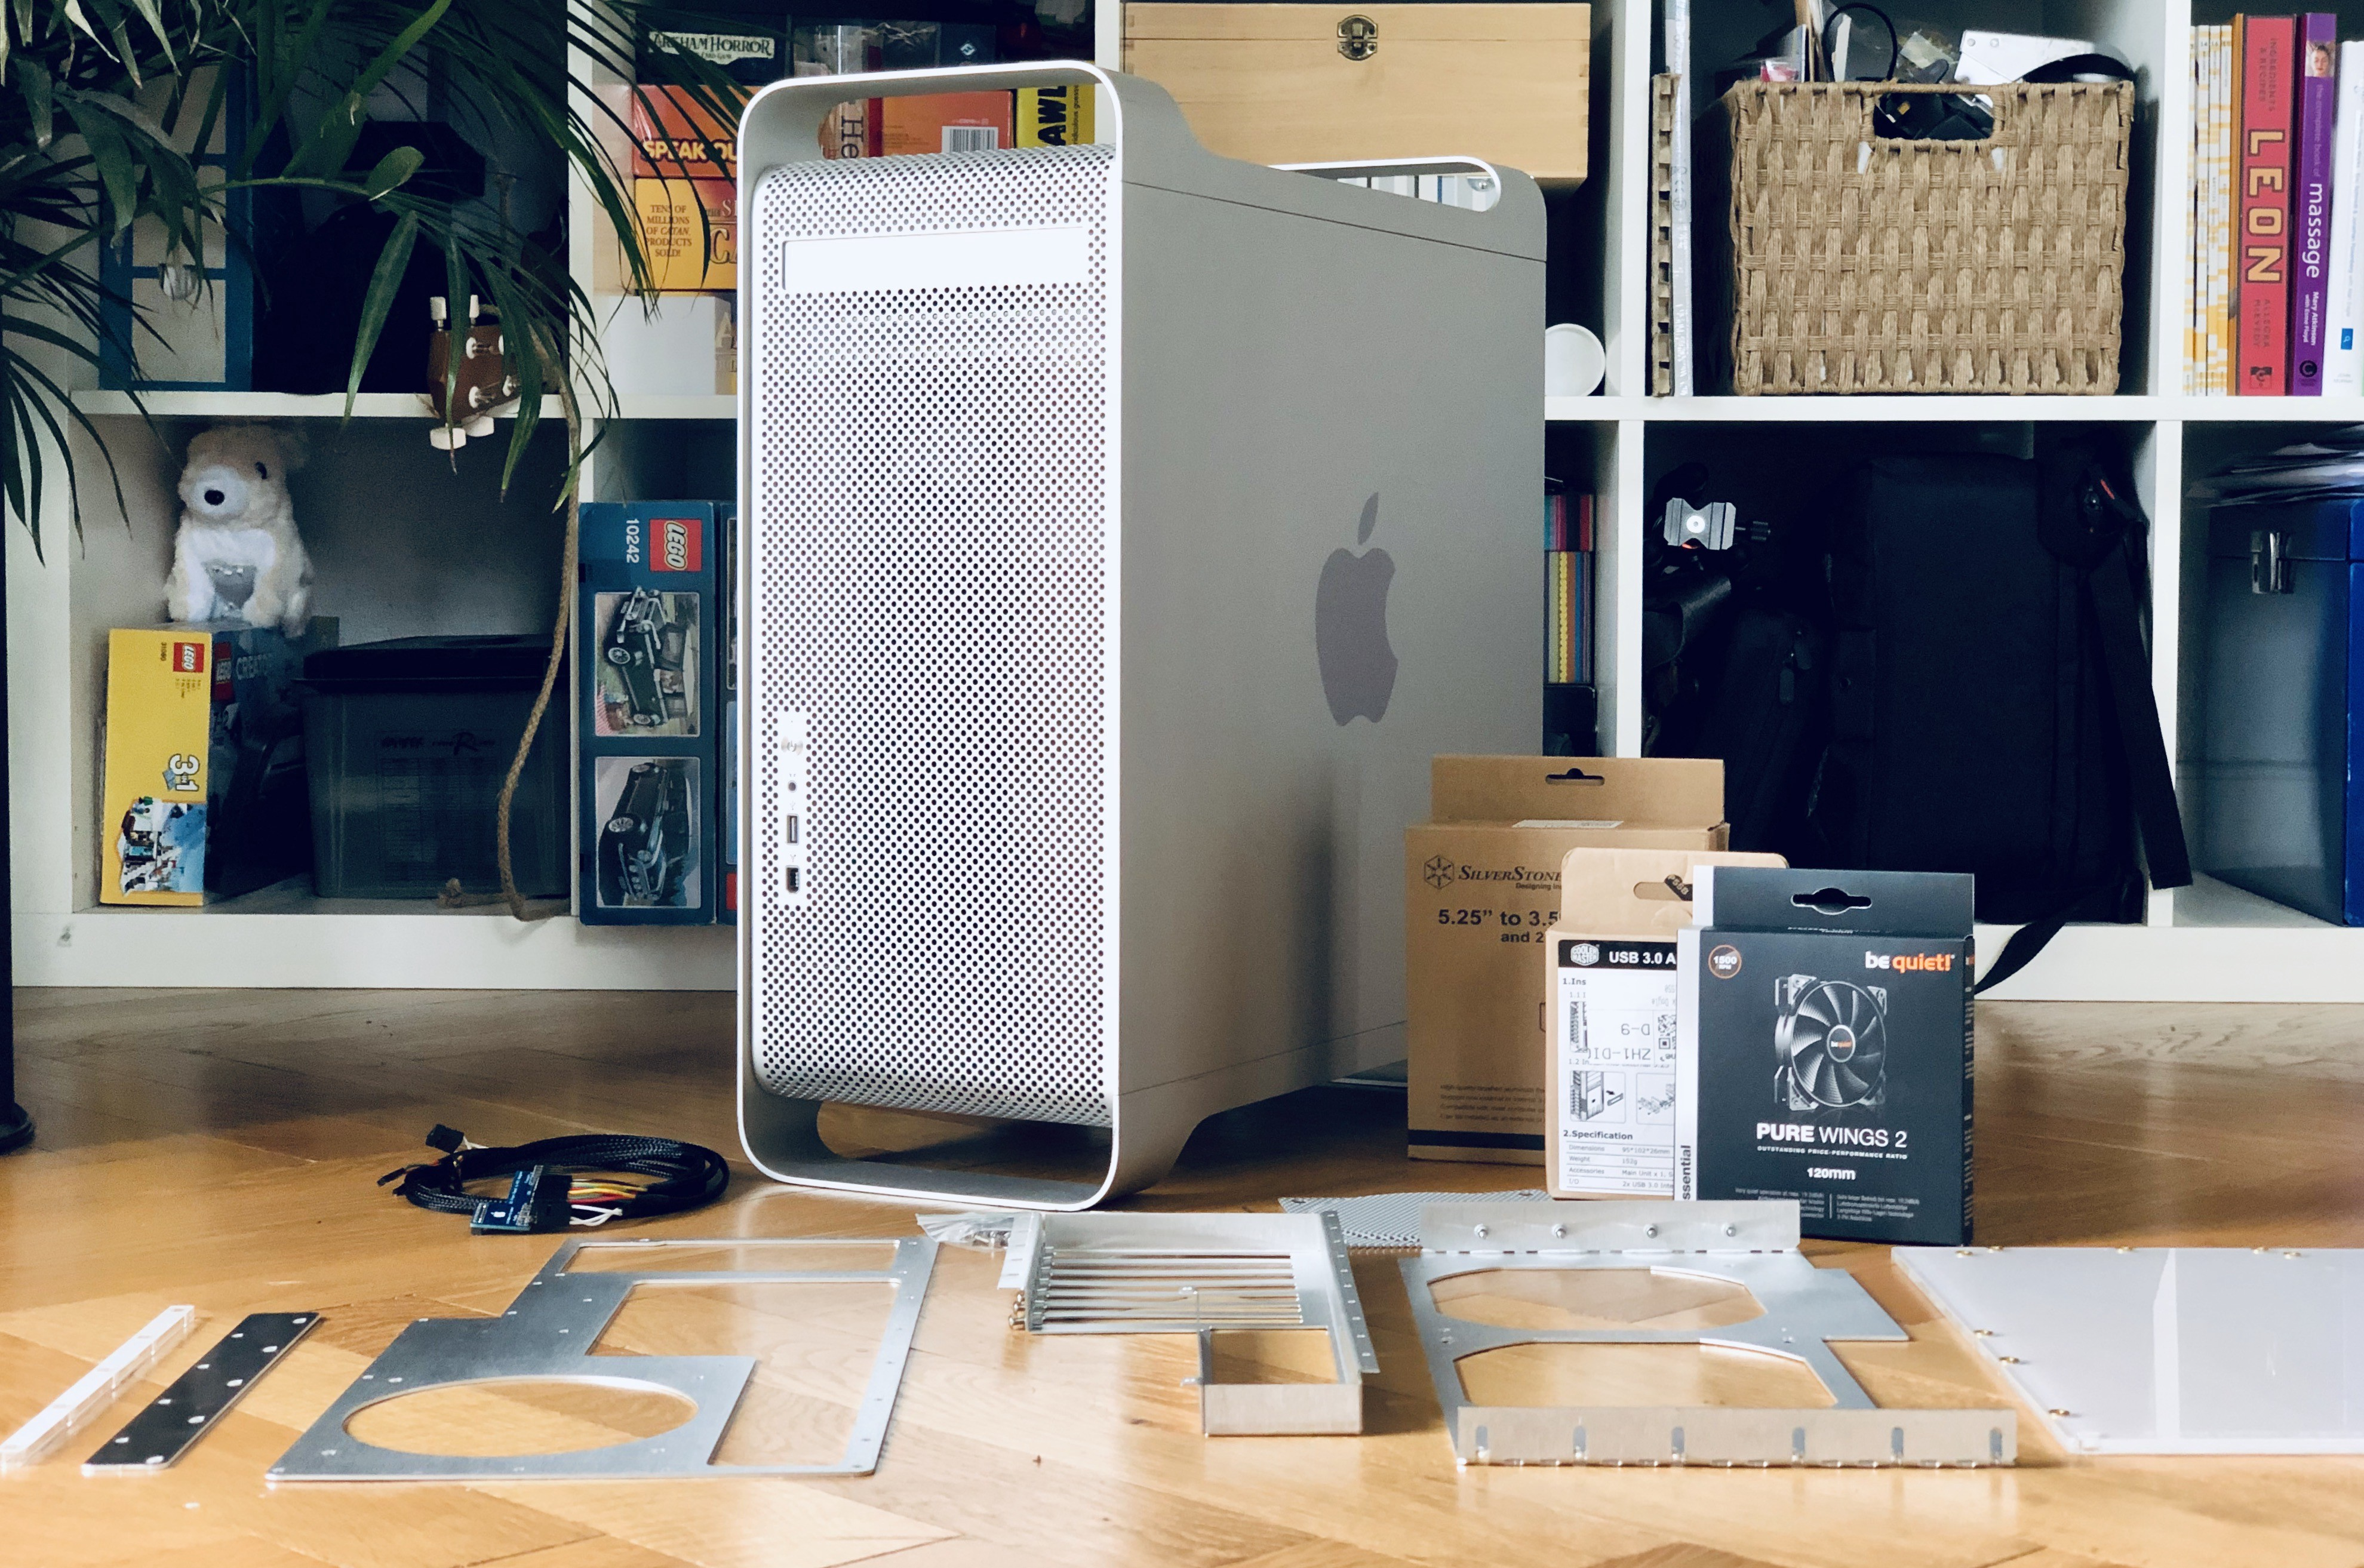 An Apple PowerMac G5 surrounded by modding components